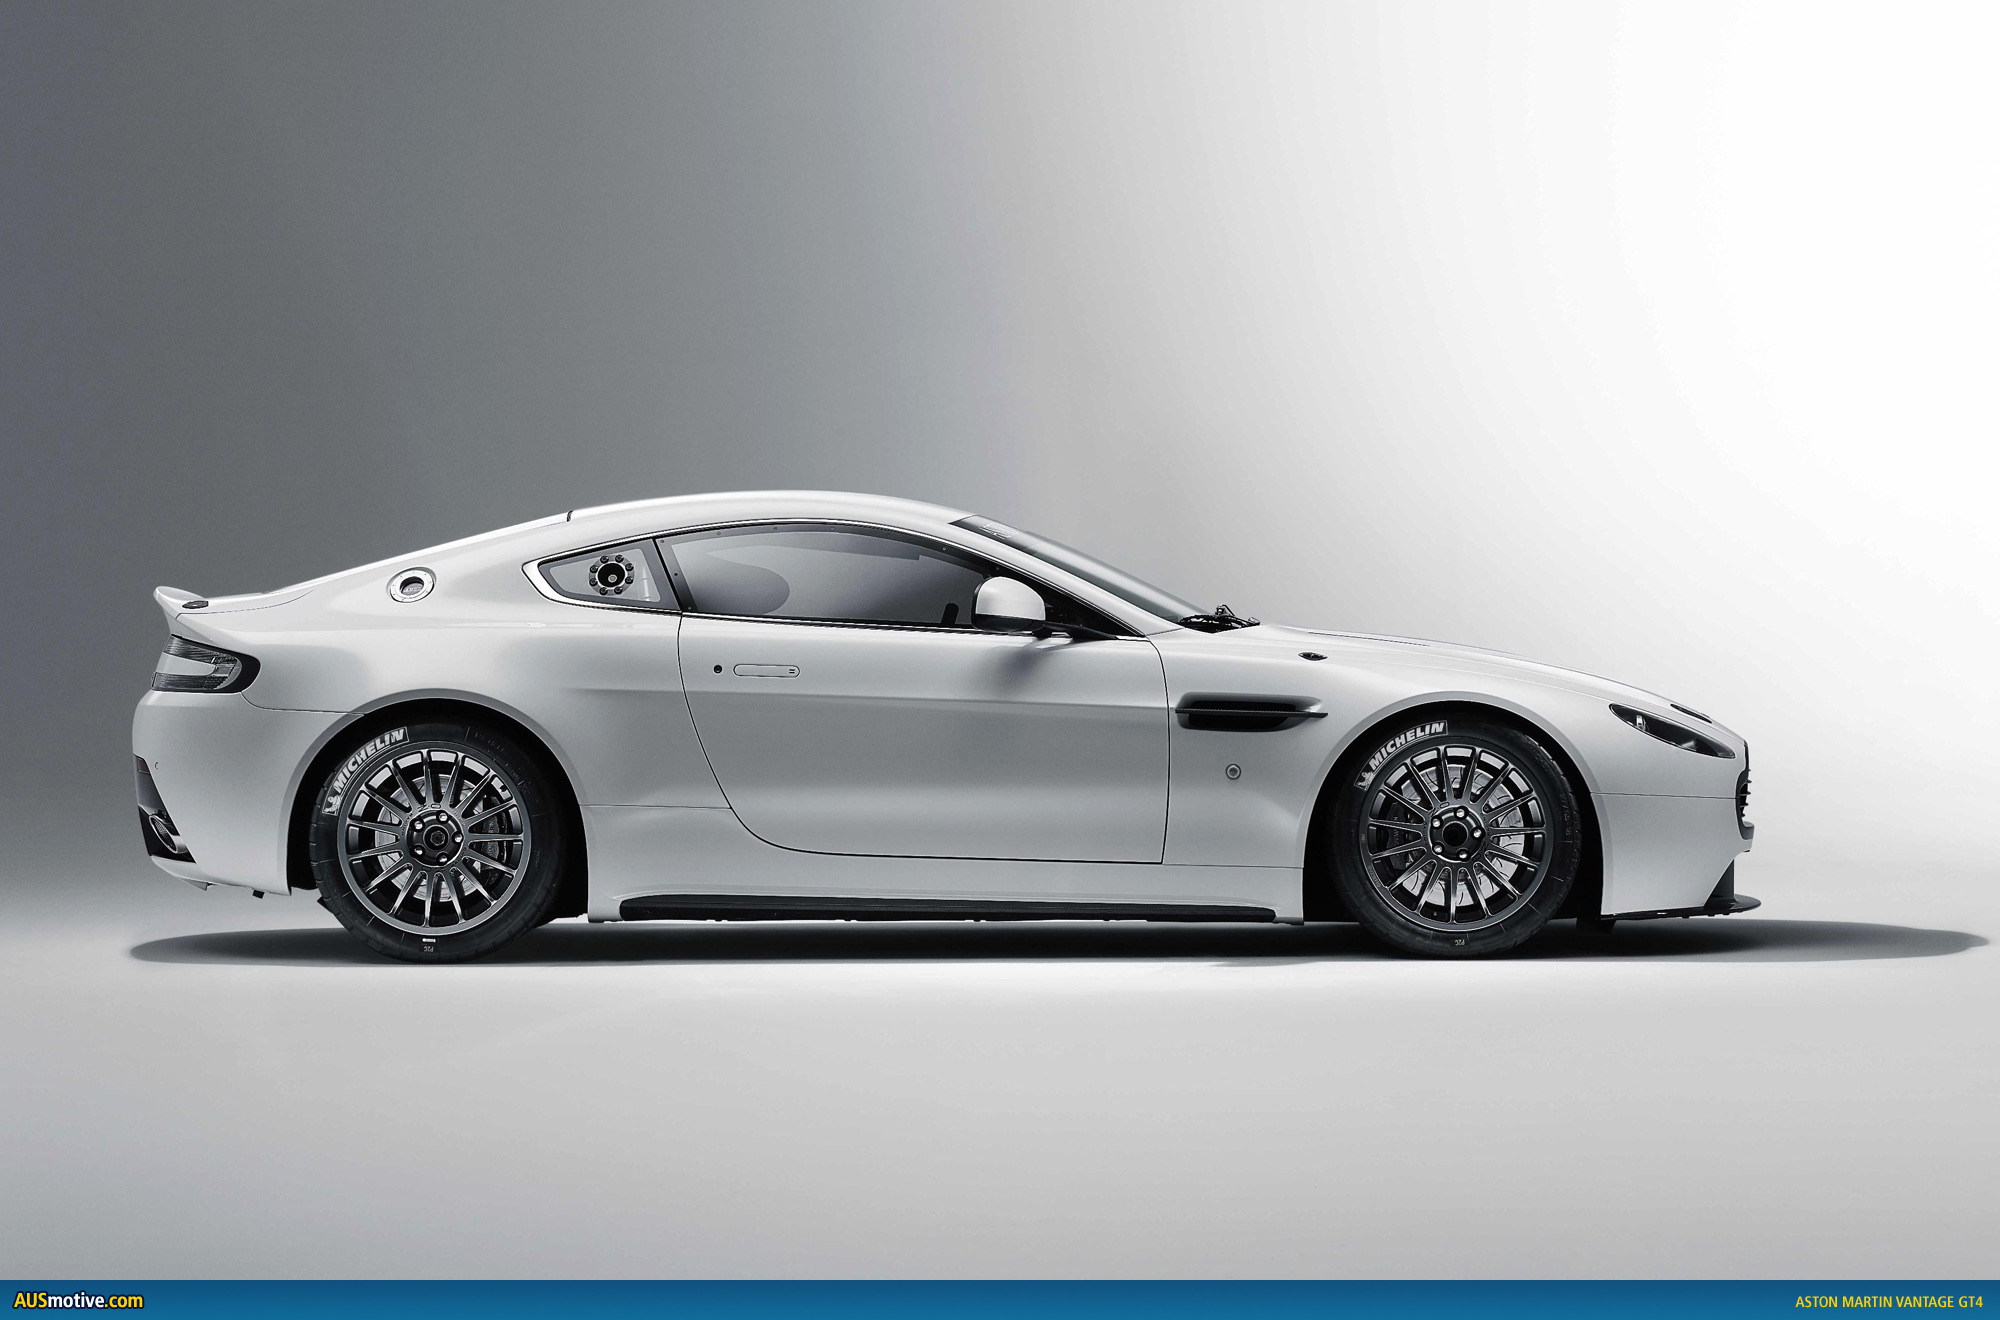 aston martin updates vantage gt4. Black Bedroom Furniture Sets. Home Design Ideas